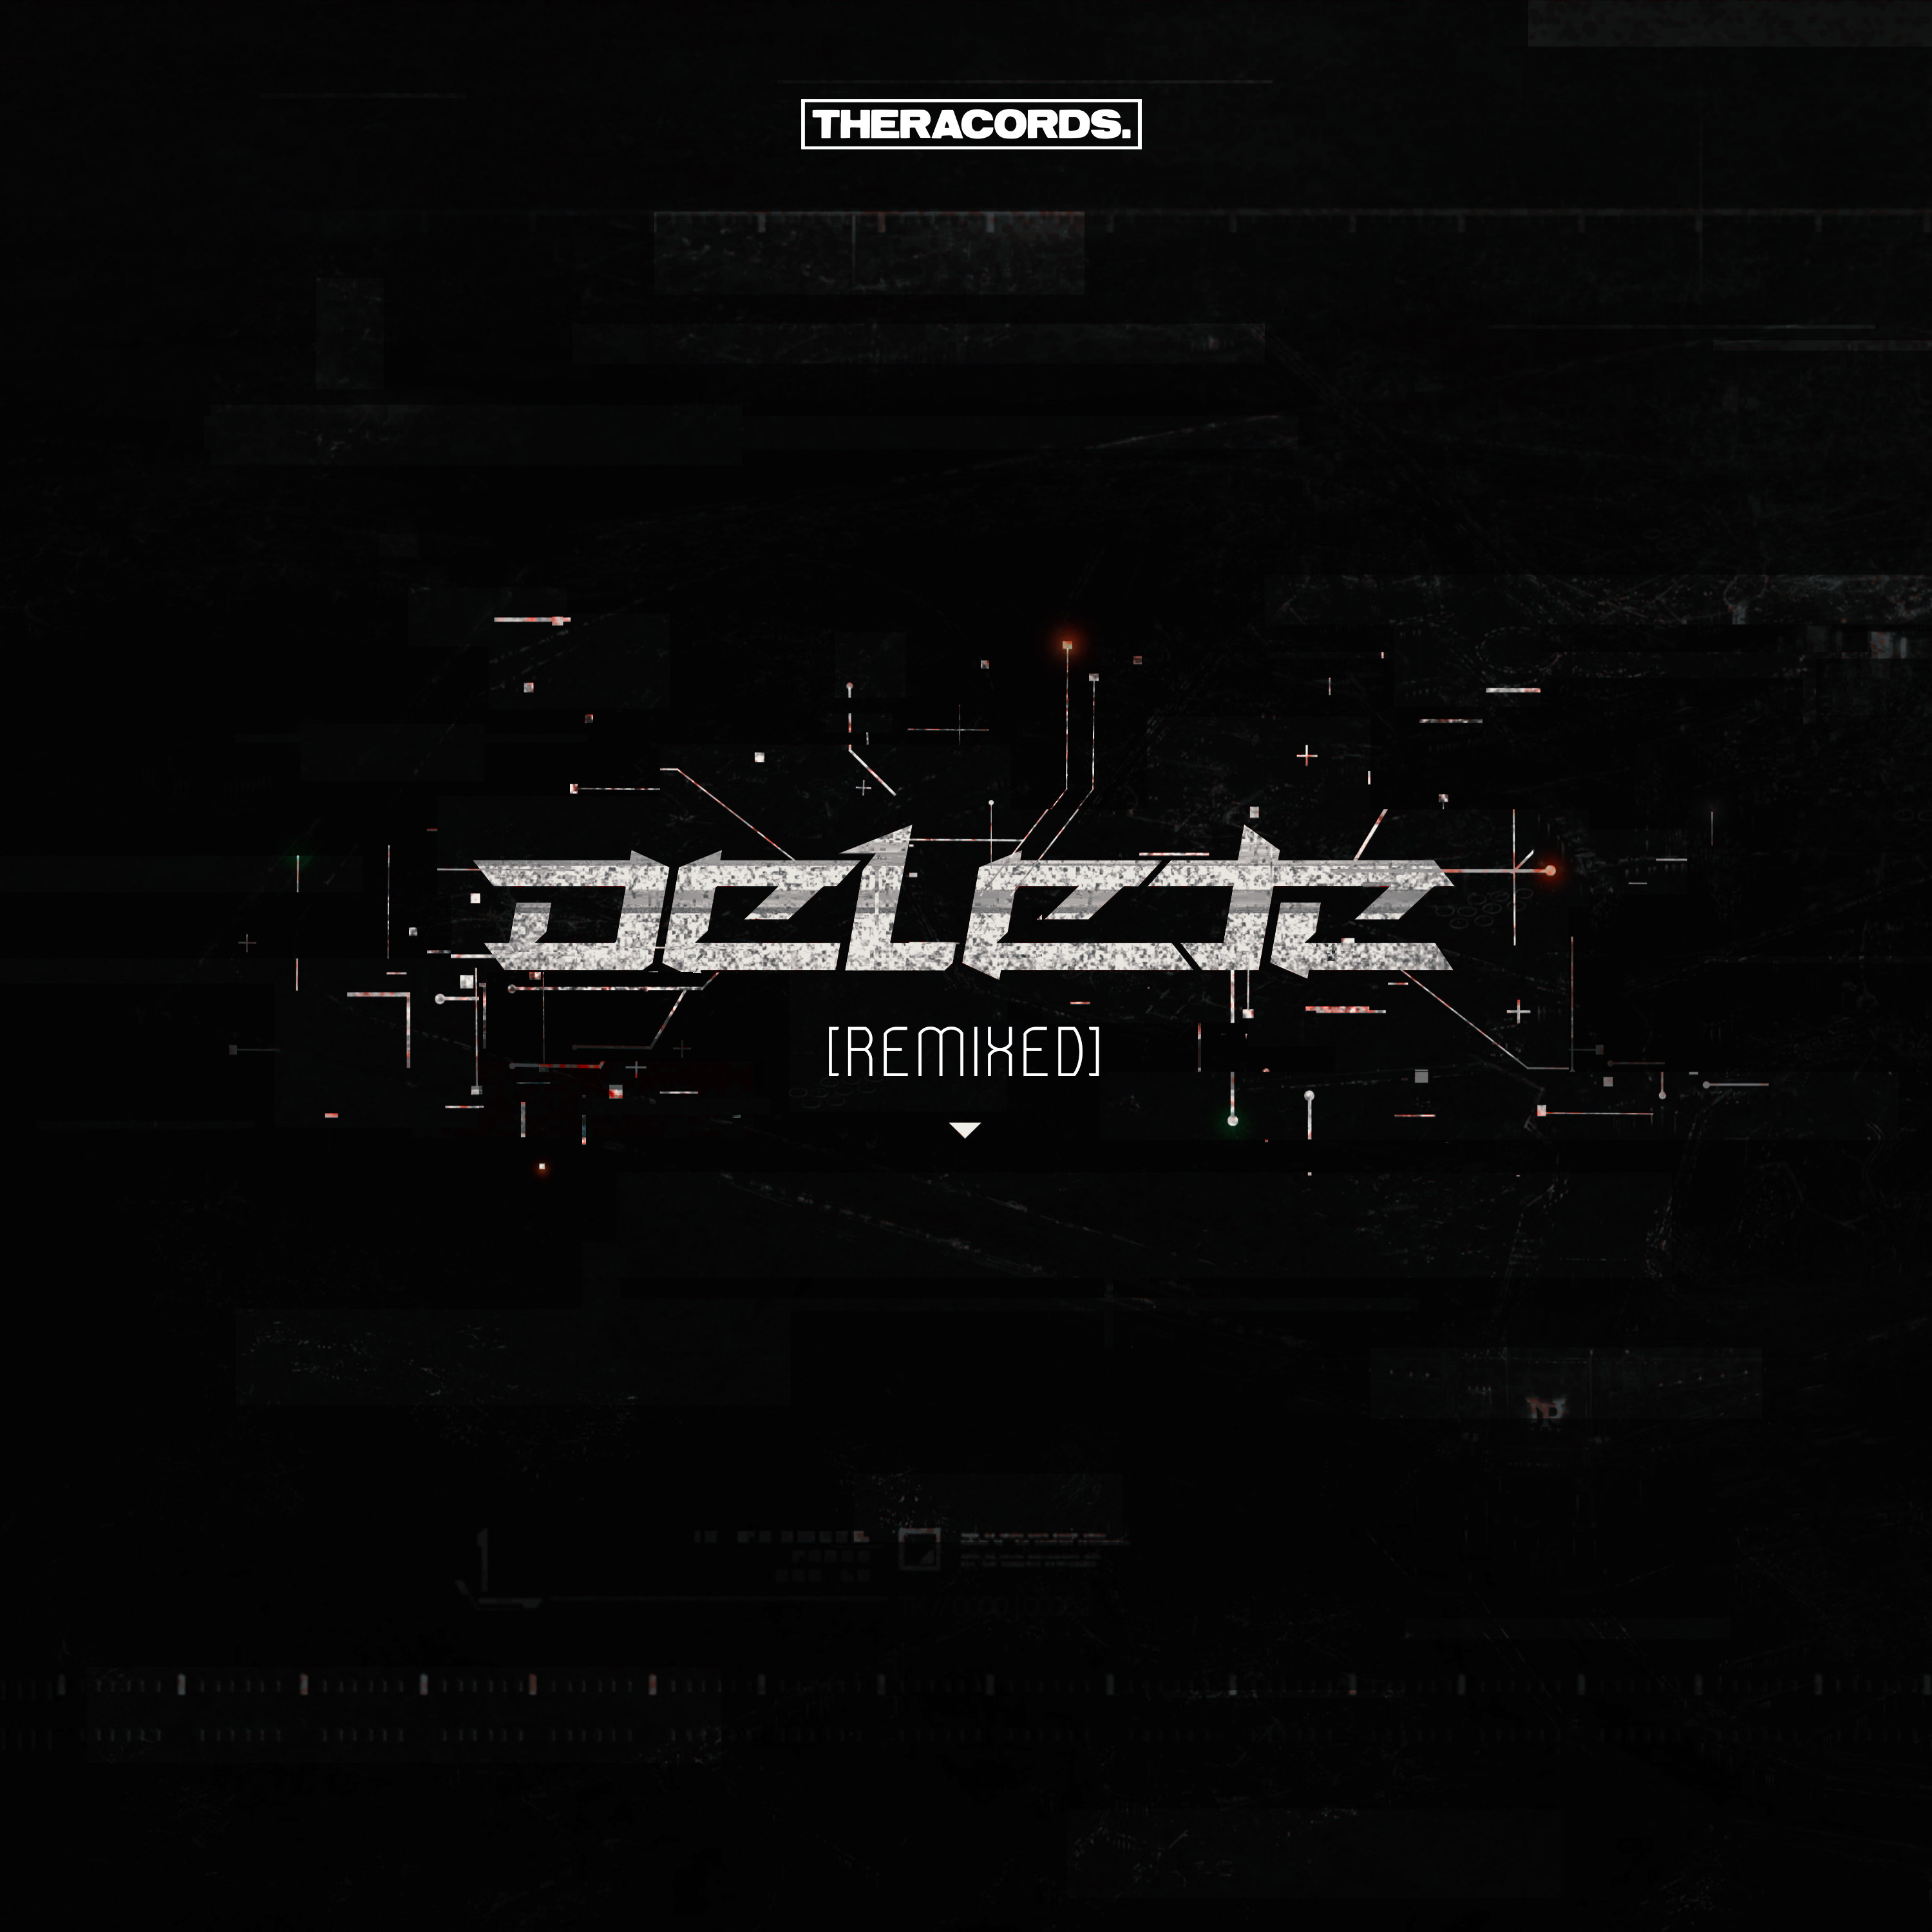 Delete - Remixed EP [THERACORDS] THER180